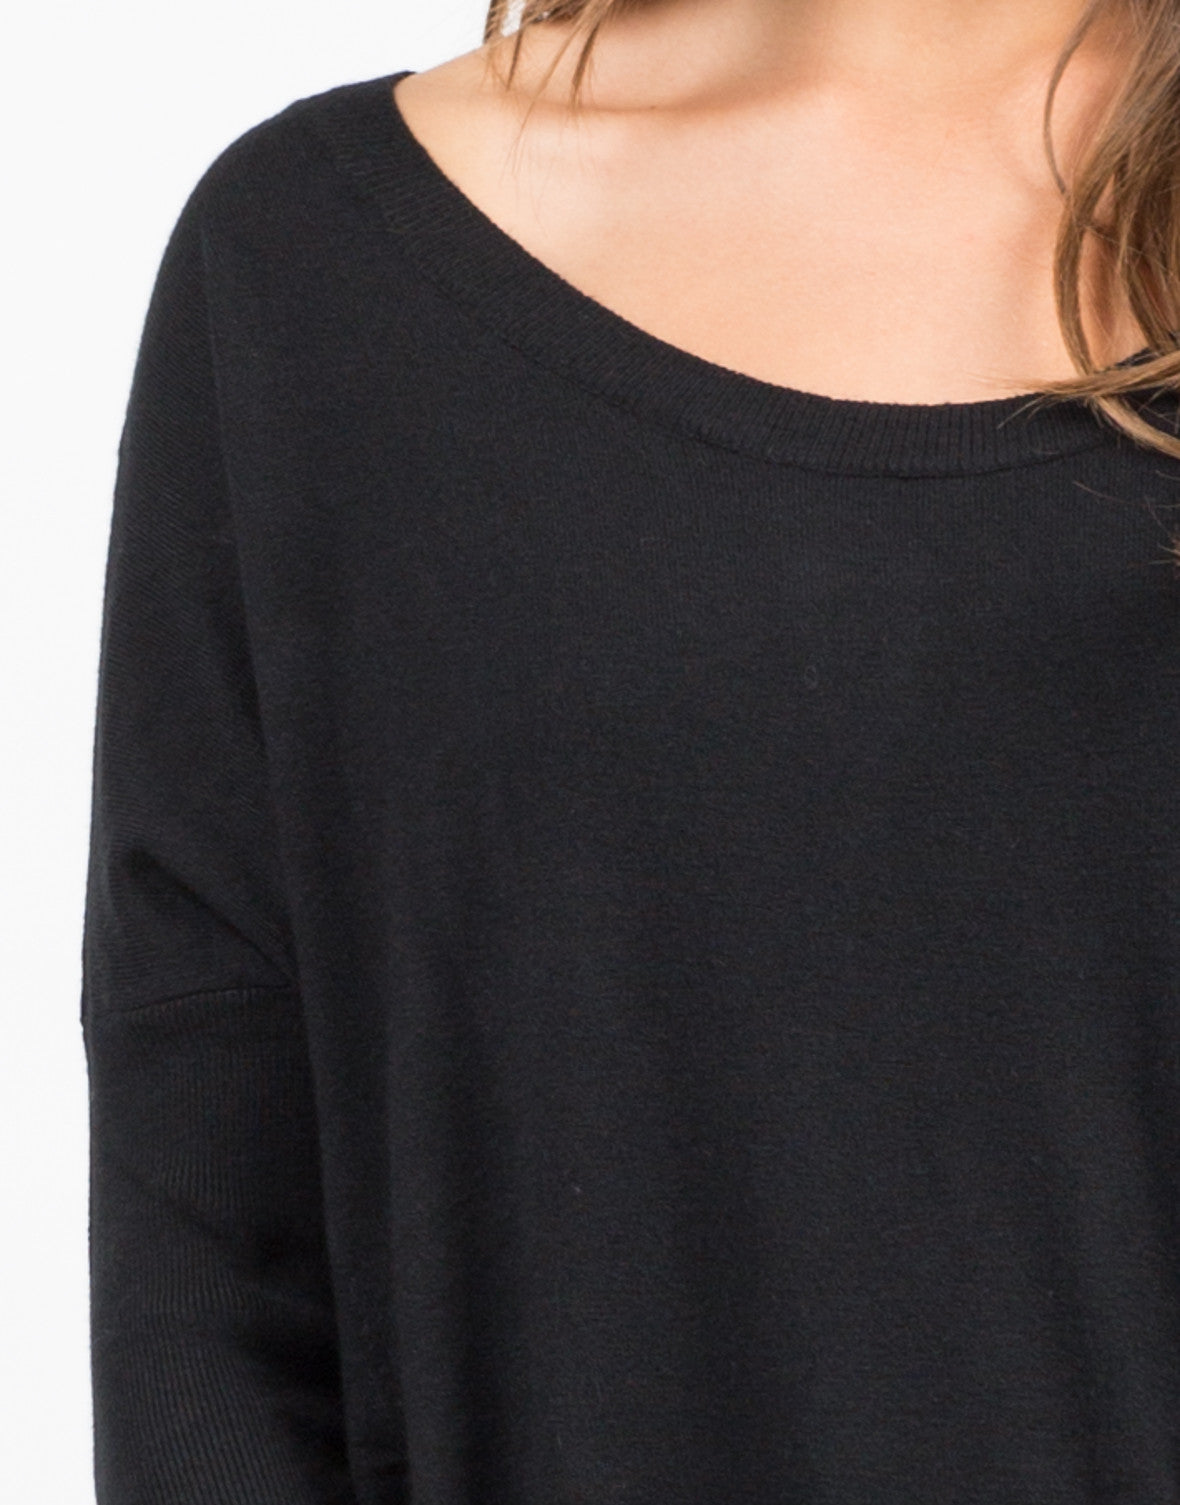 Detail of Pocket Sweater Top